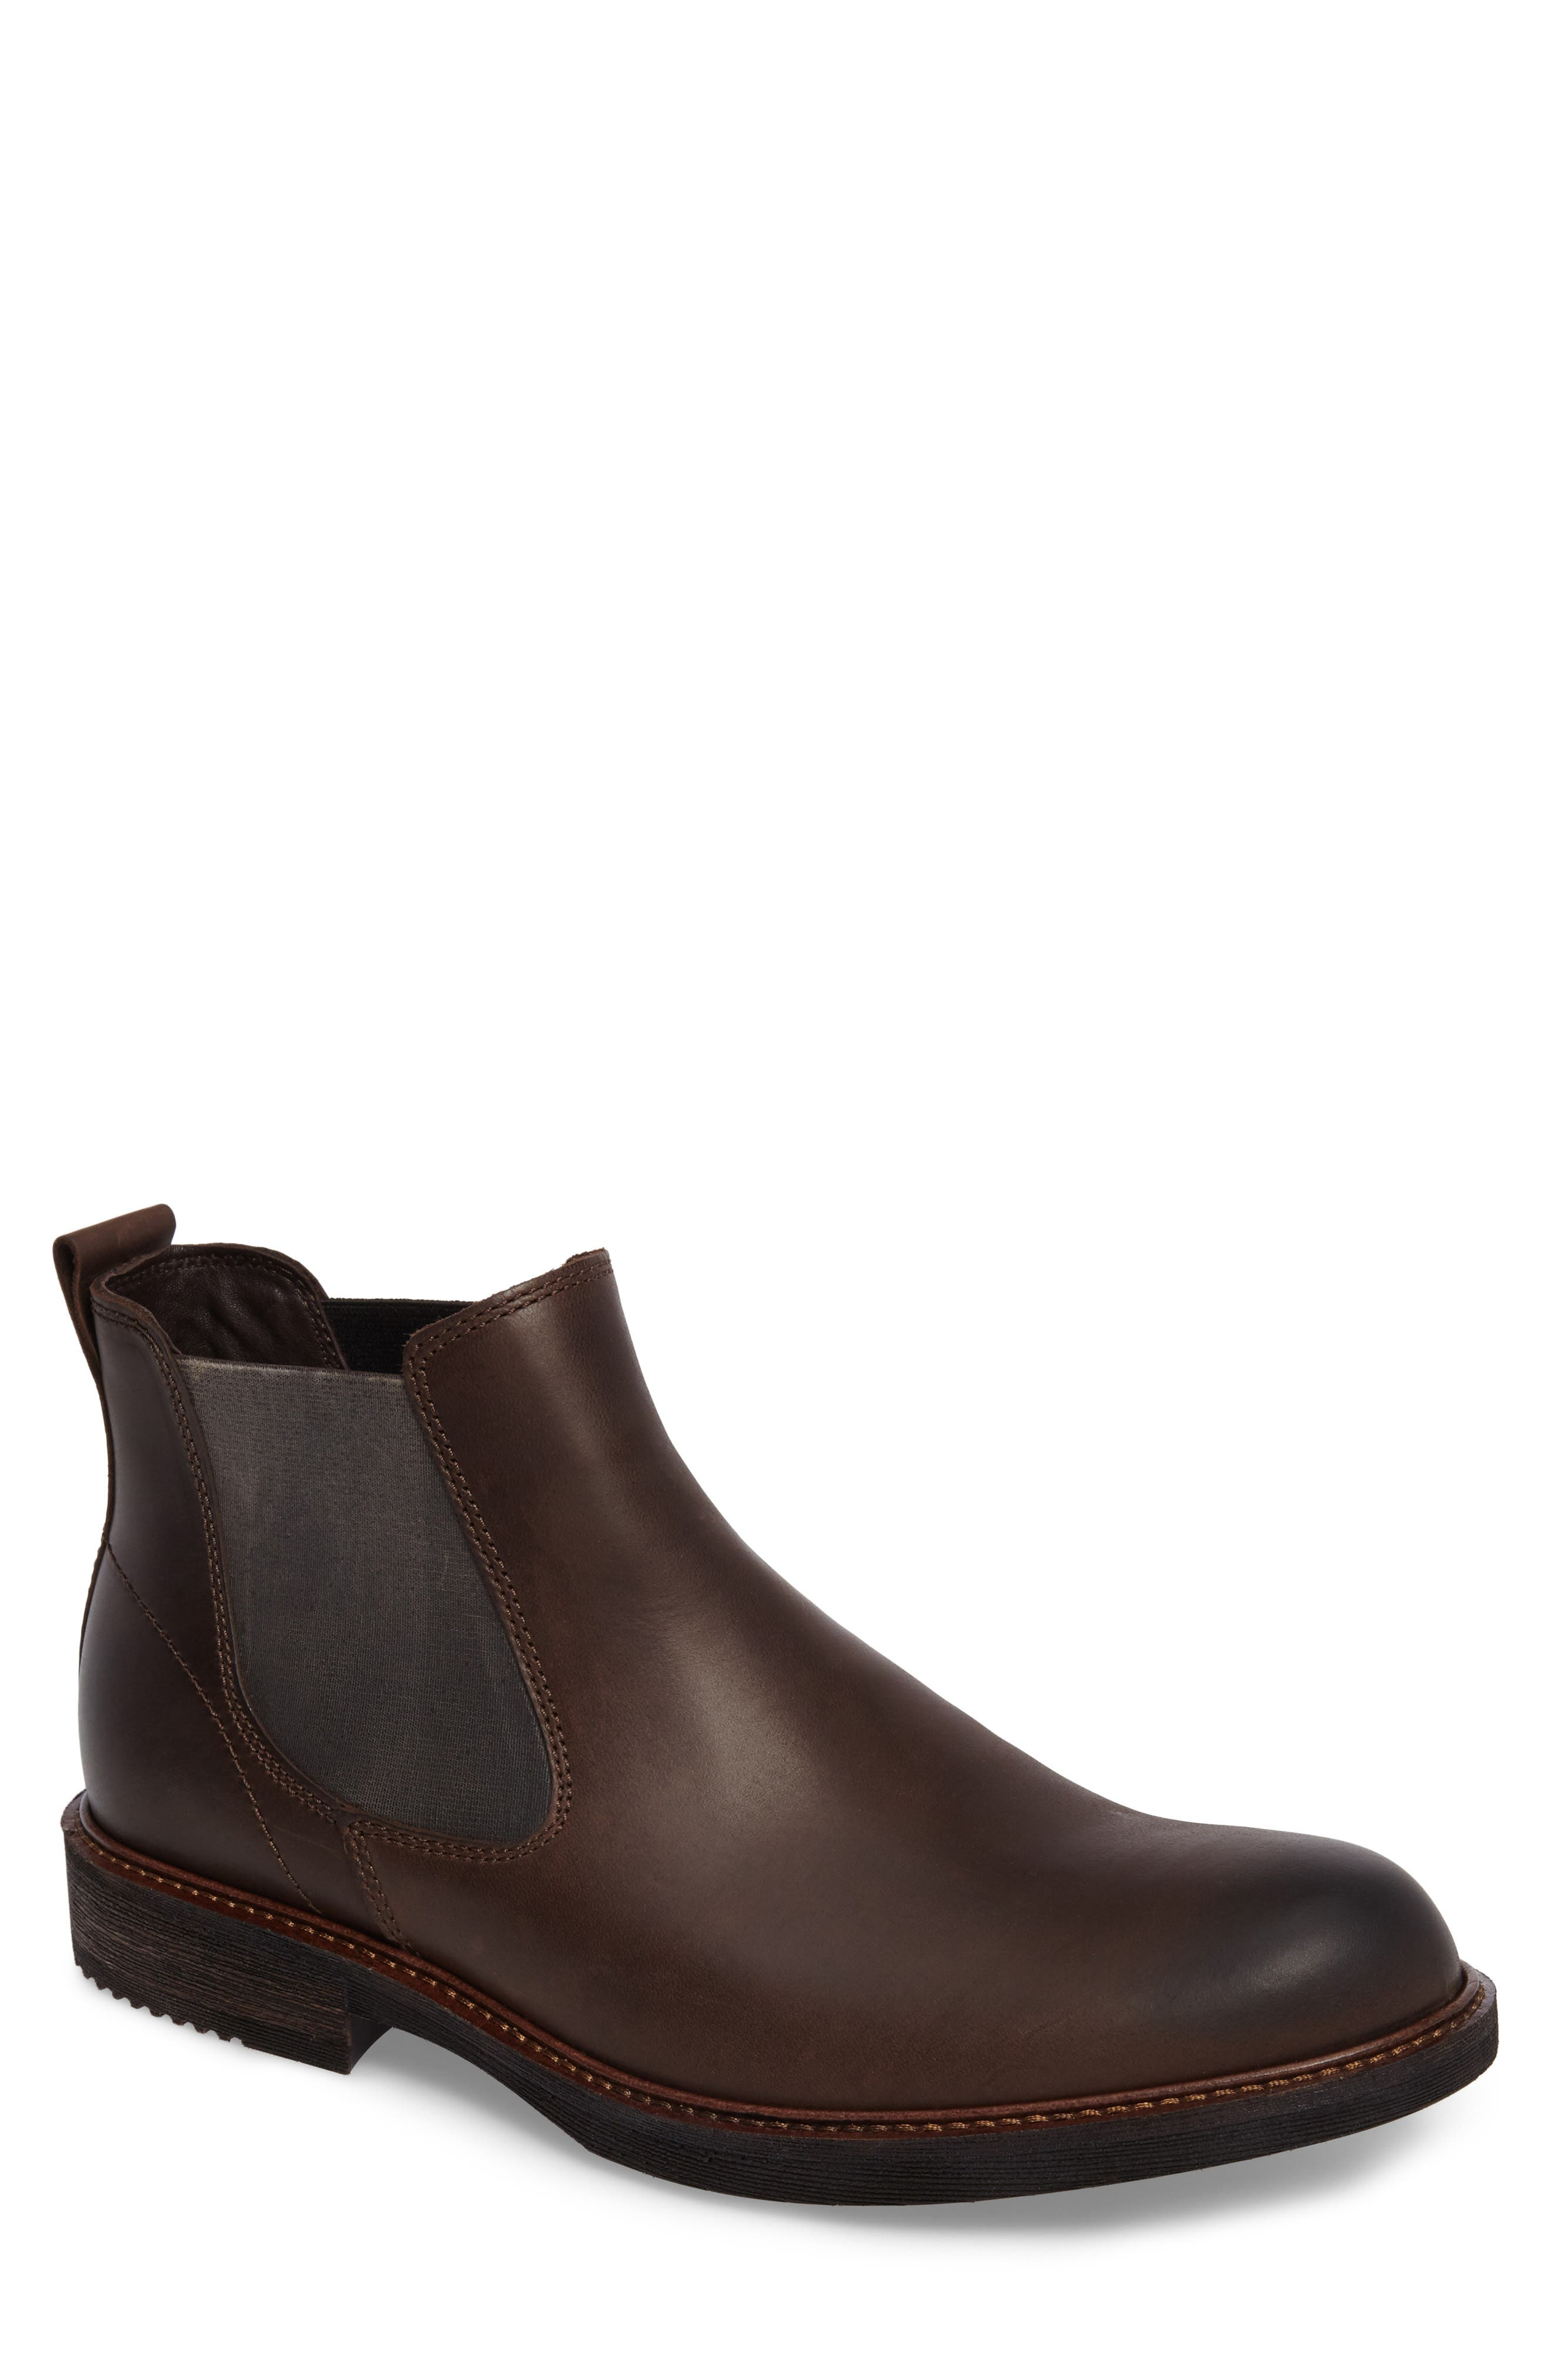 Kenton Chelsea Boot,                             Main thumbnail 1, color,                             217